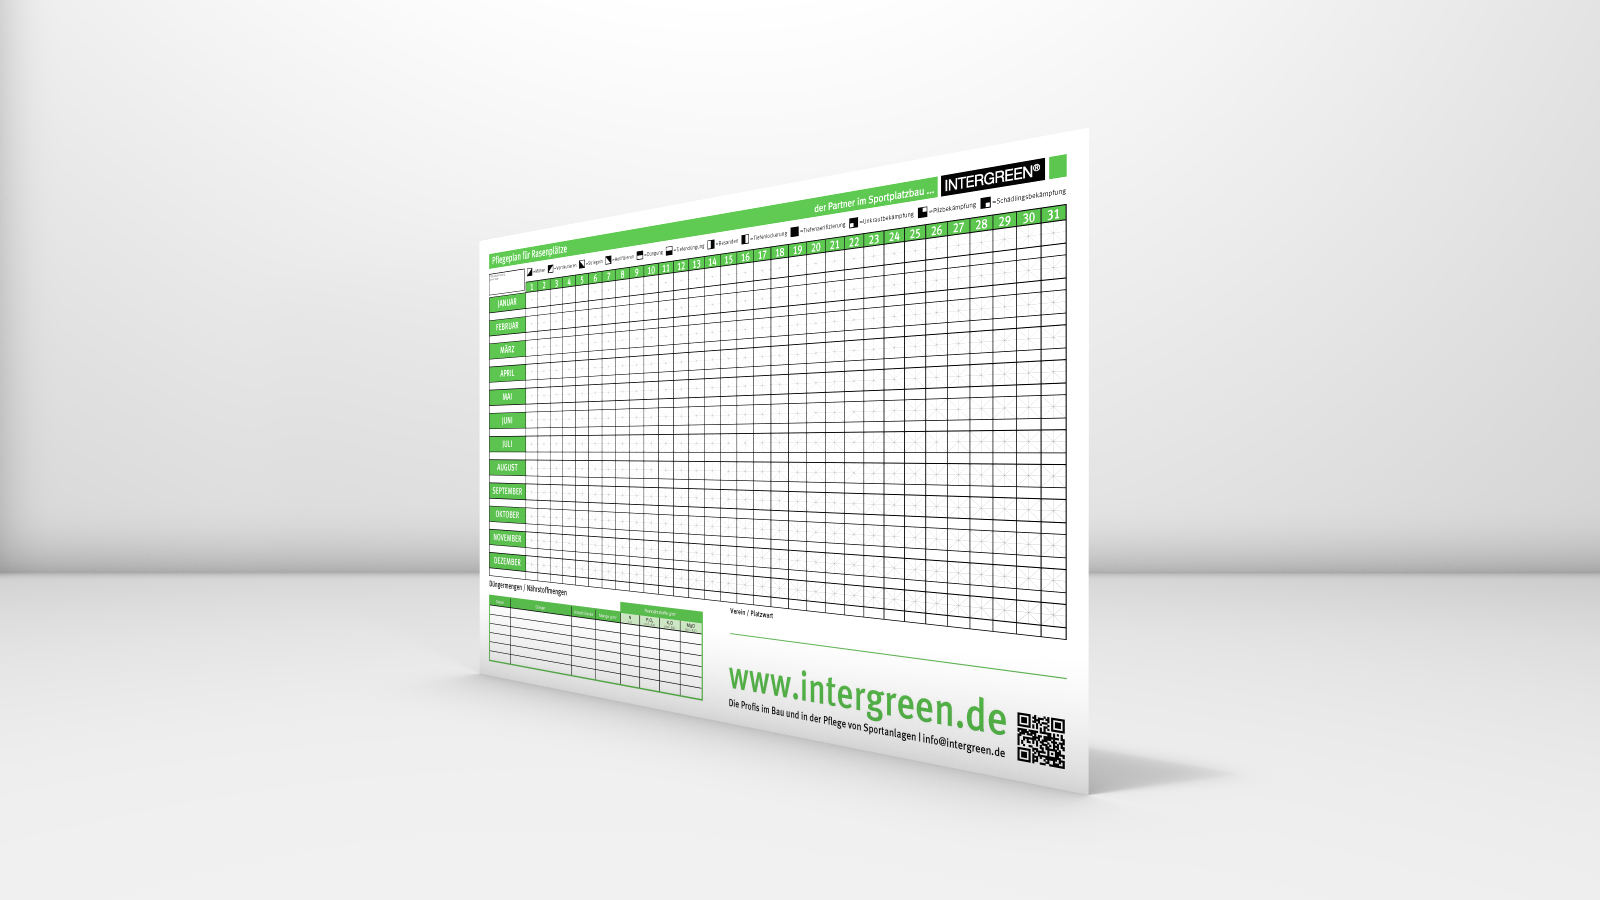 INTERGREEN BASIS WEB 20160129 001 Poster Pflegeplan Sportrasen